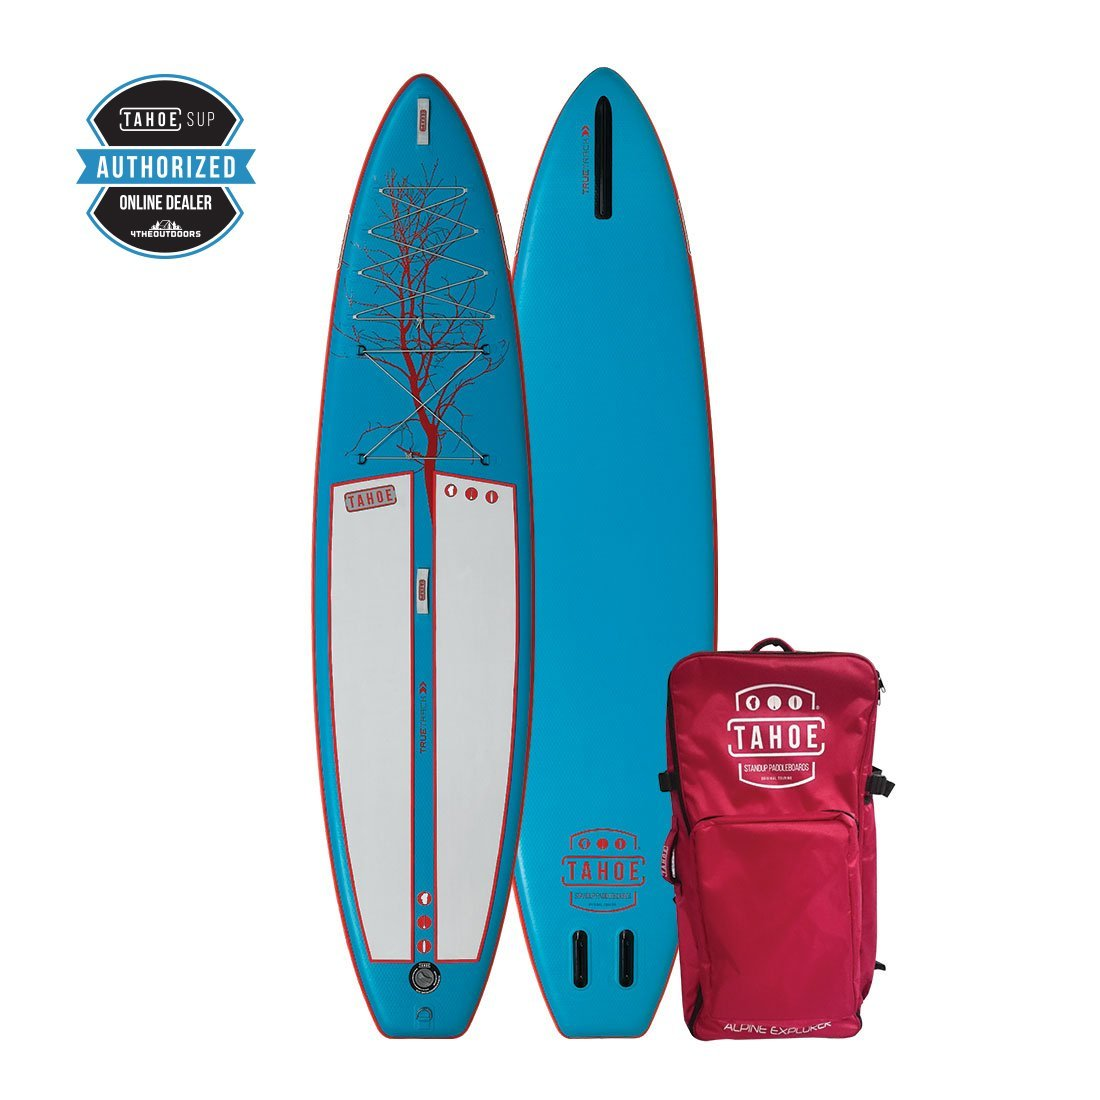 RENTAL -Tahoe inflatable  iSUP Alpine Explorer Standup Paddle Board 11' Rental 4theoutdoors Canada SUP outdoors